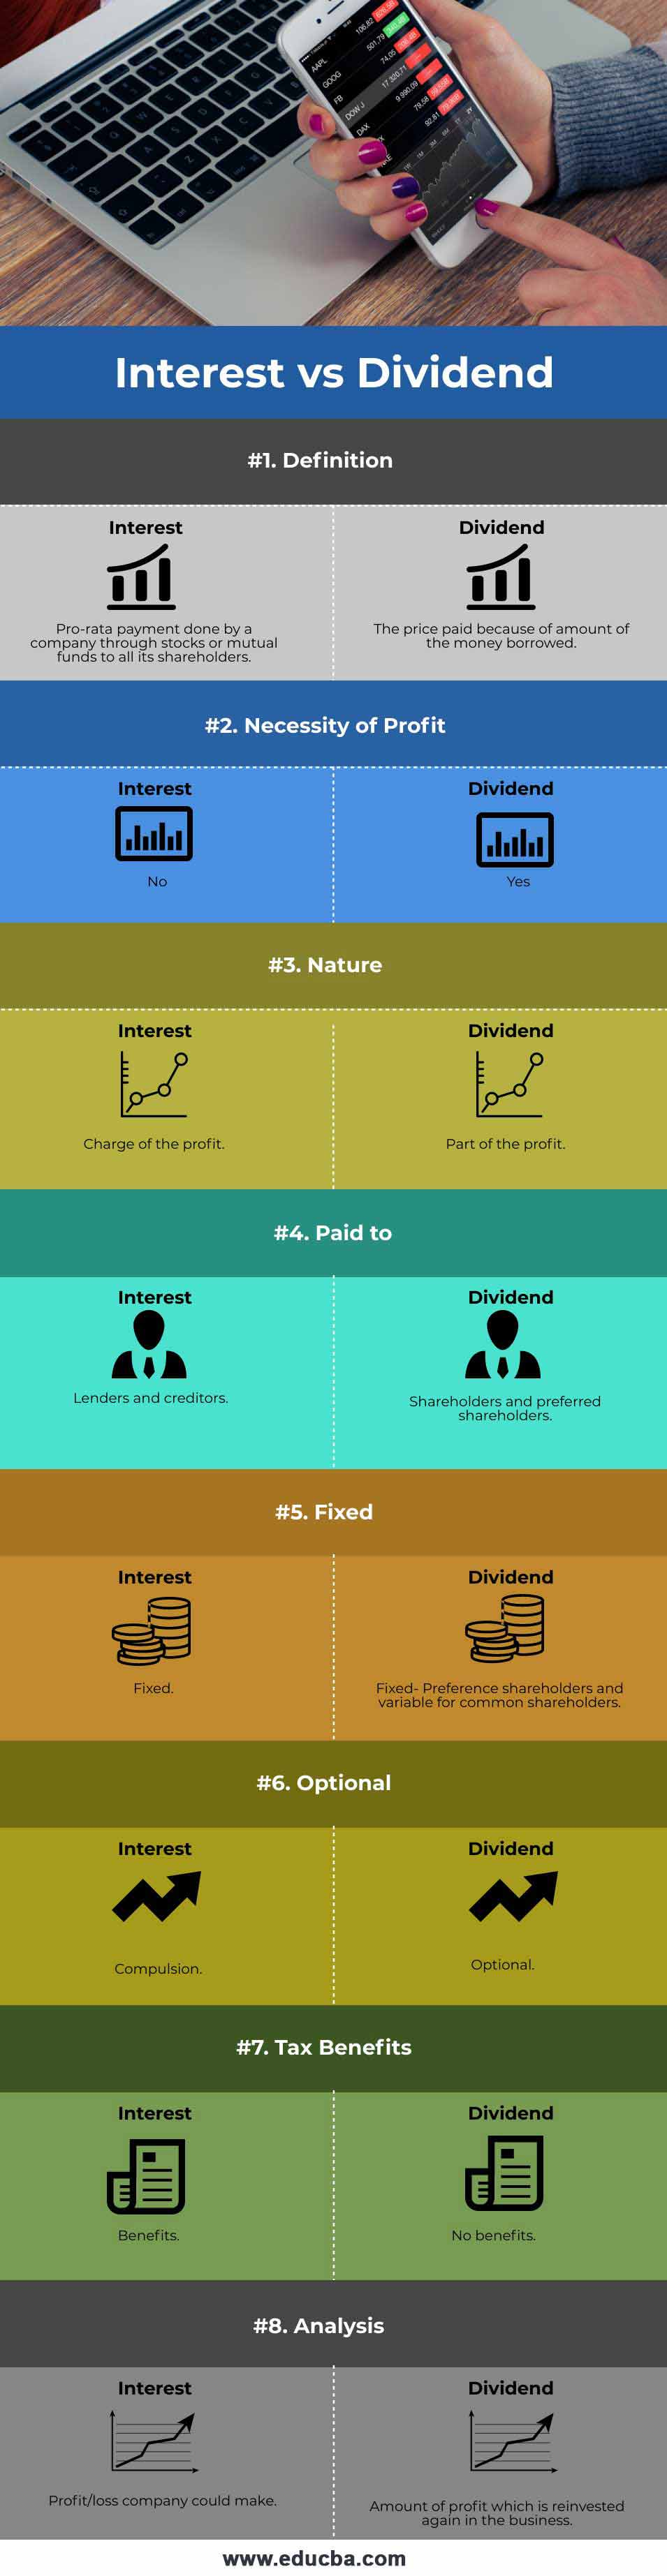 Interest vs Dividend infographic